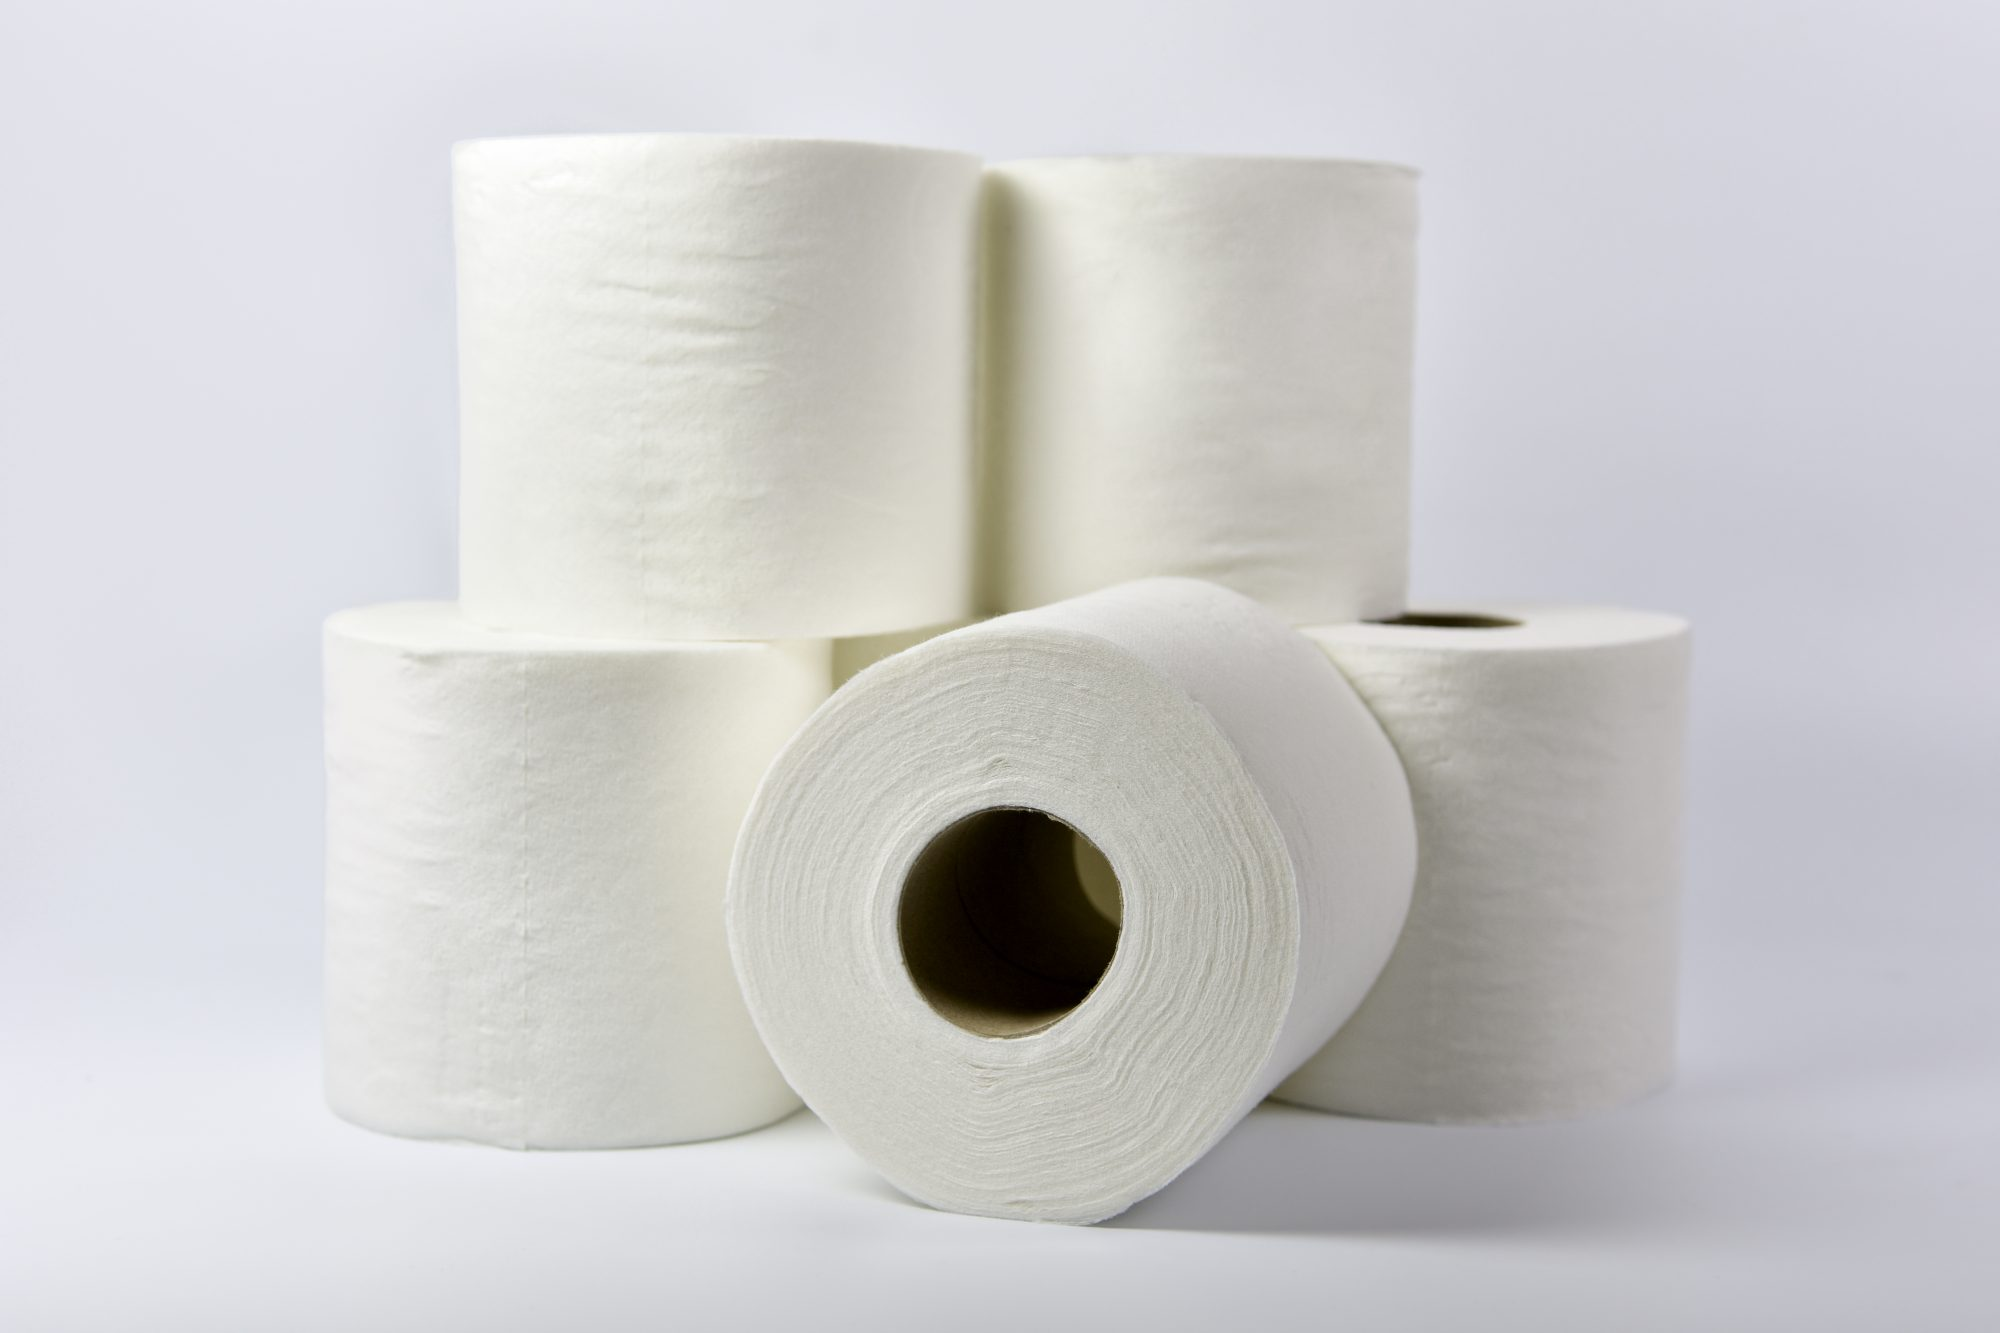 White toilet rolls on a white background